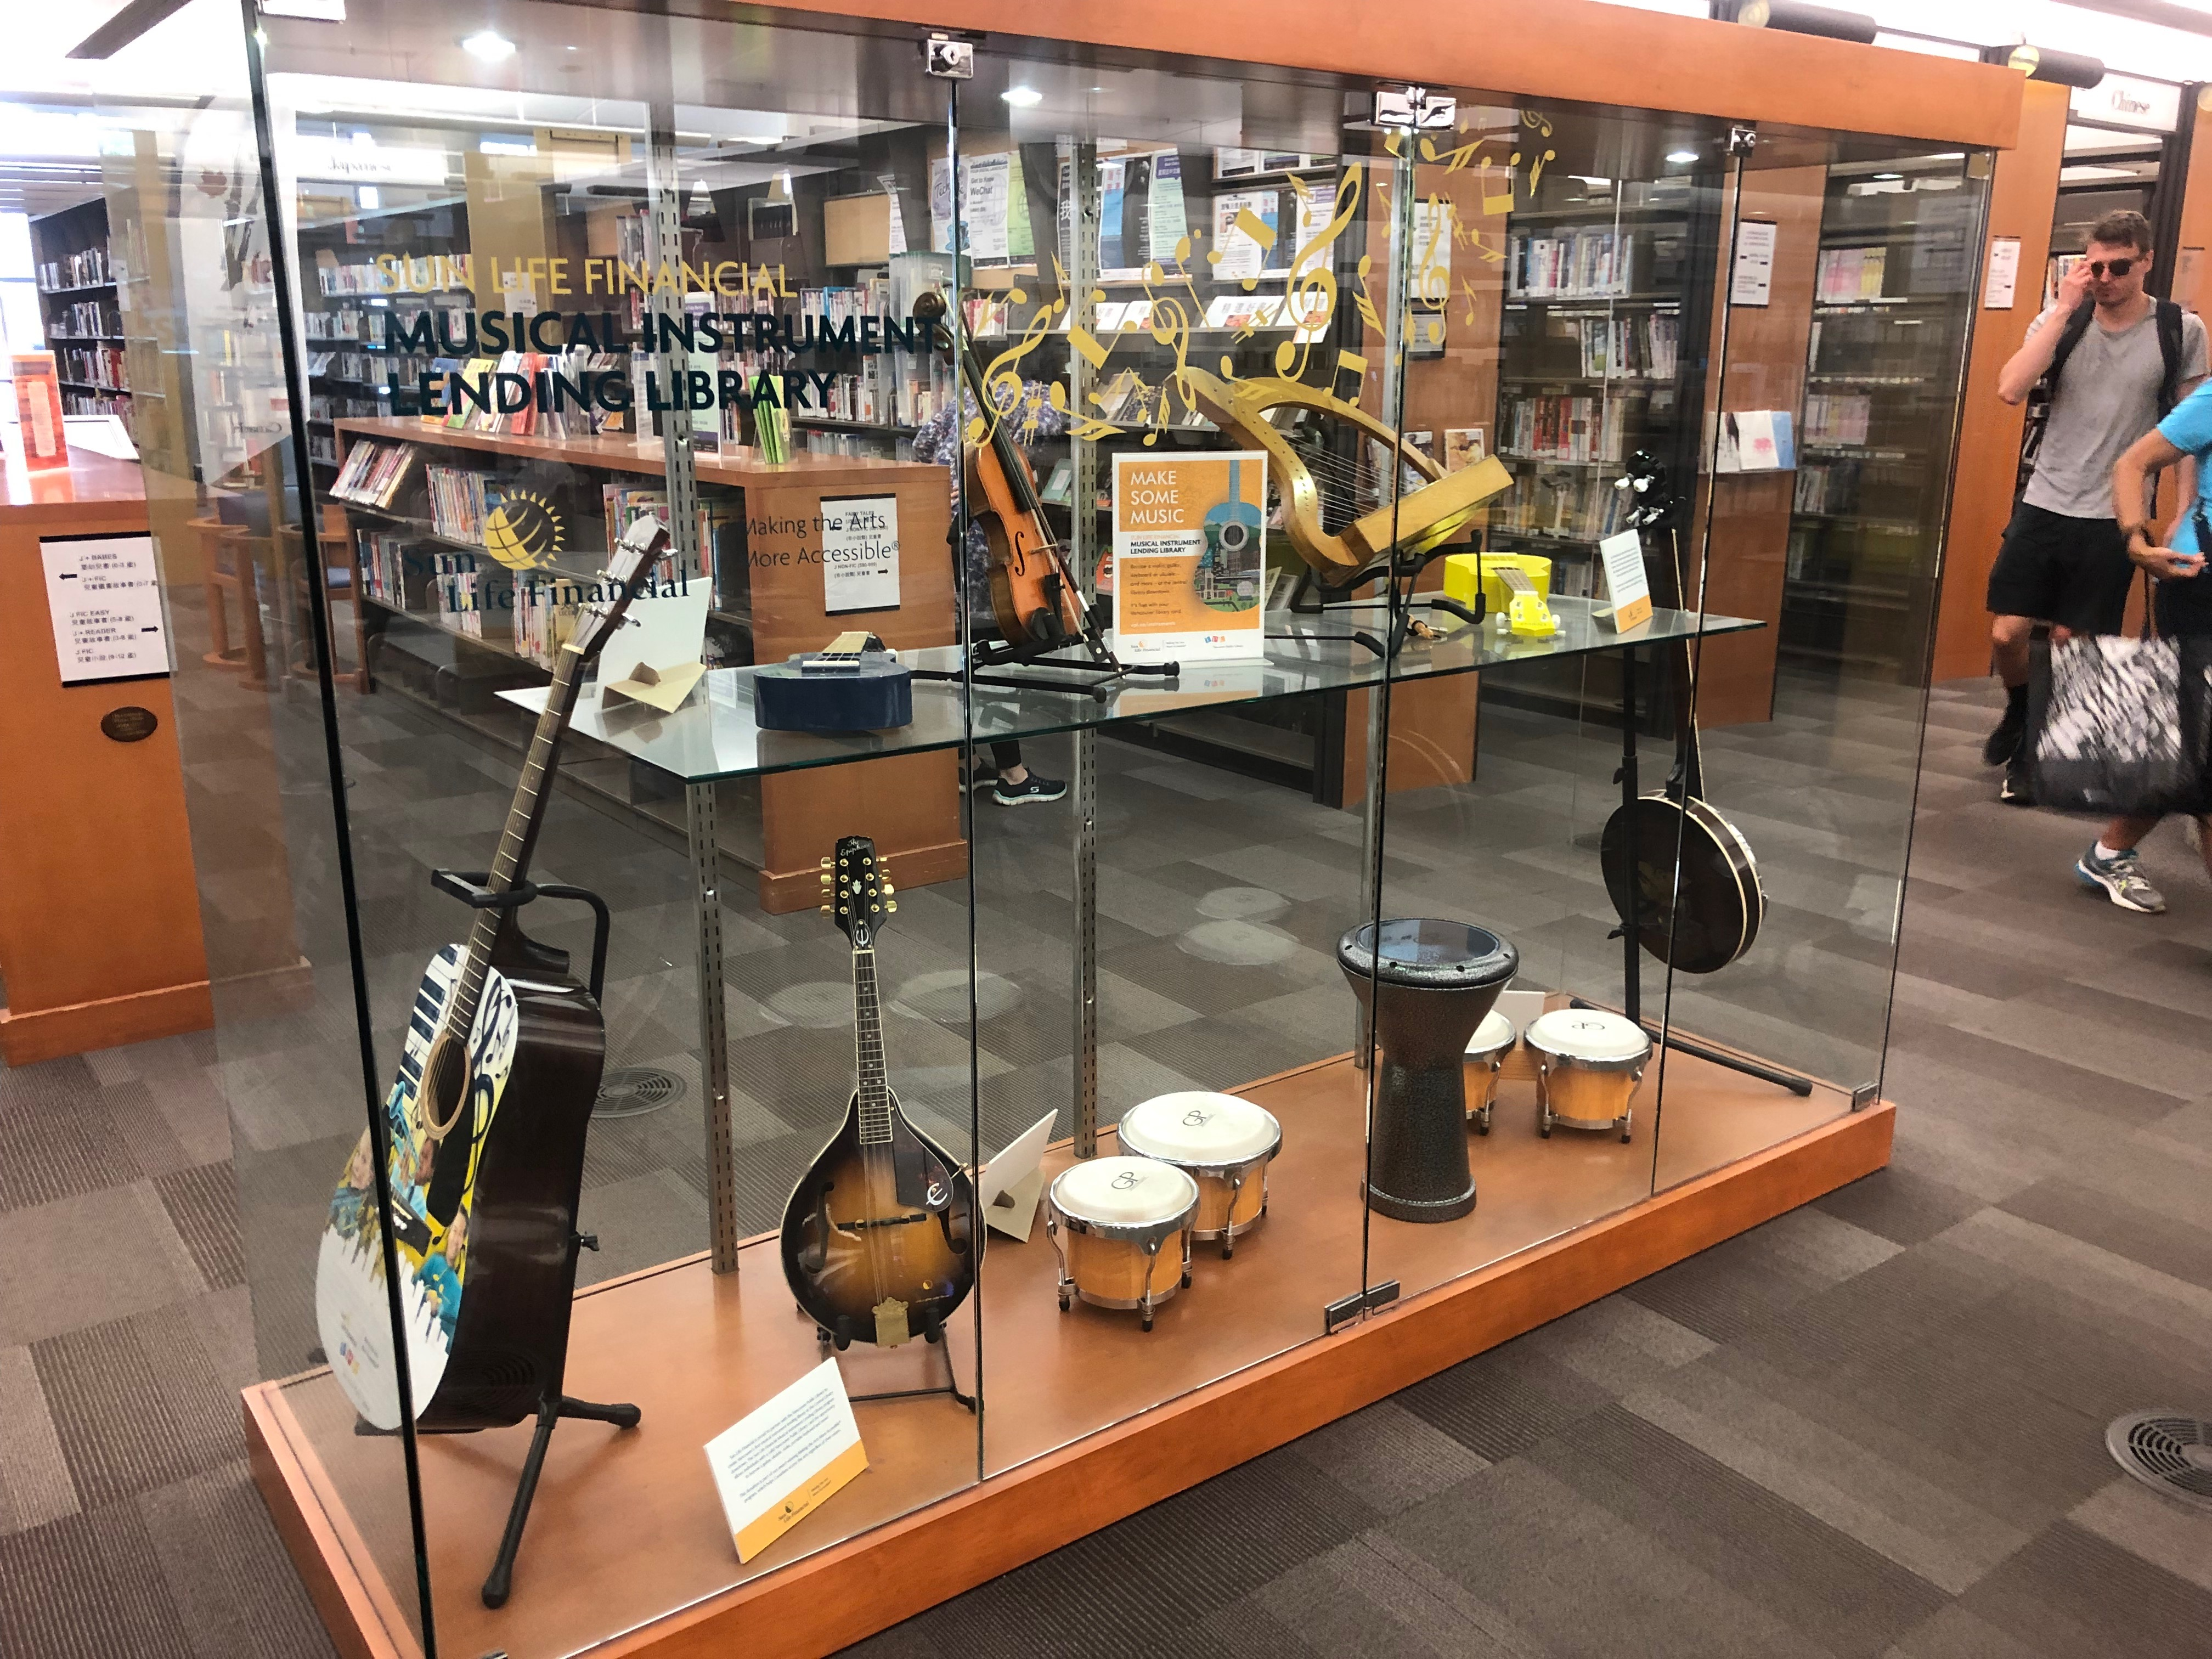 Image of display of VPL's musical instrument lending collection...